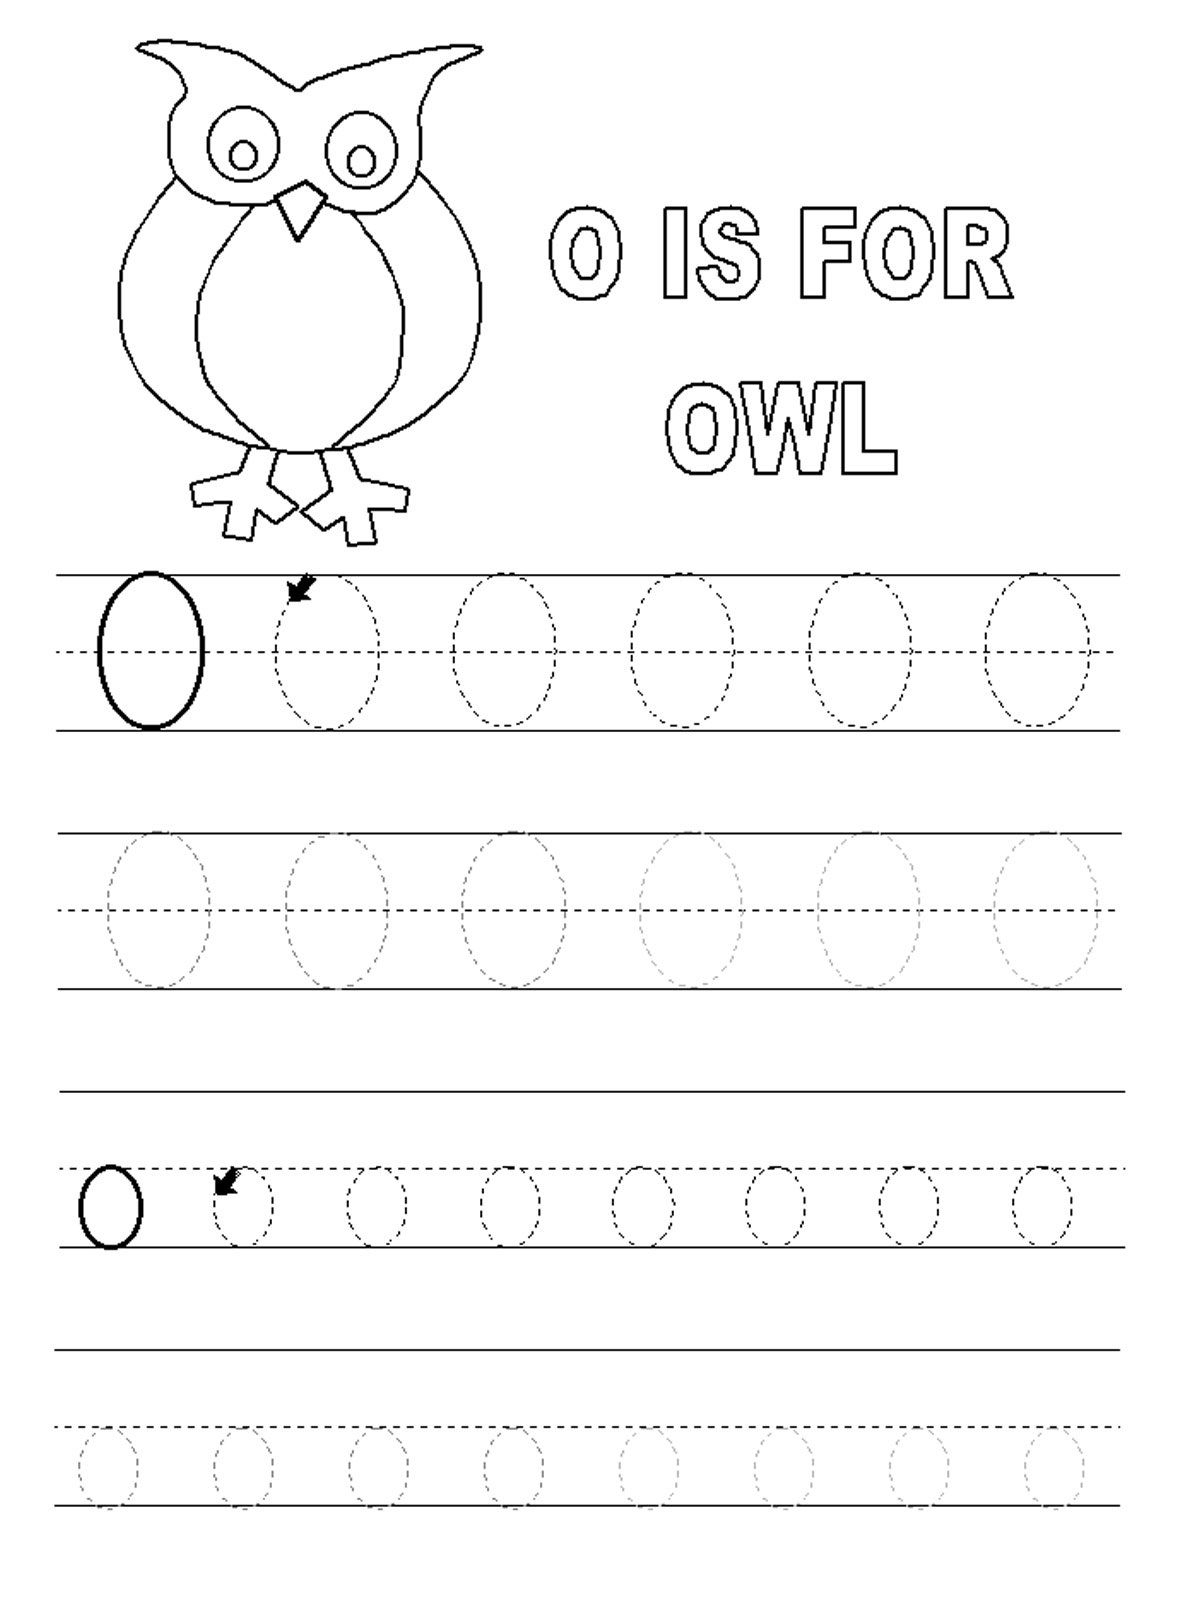 Letter O Worksheets For Preschool | Kids Worksheets Printable | Letter O Printable Worksheets